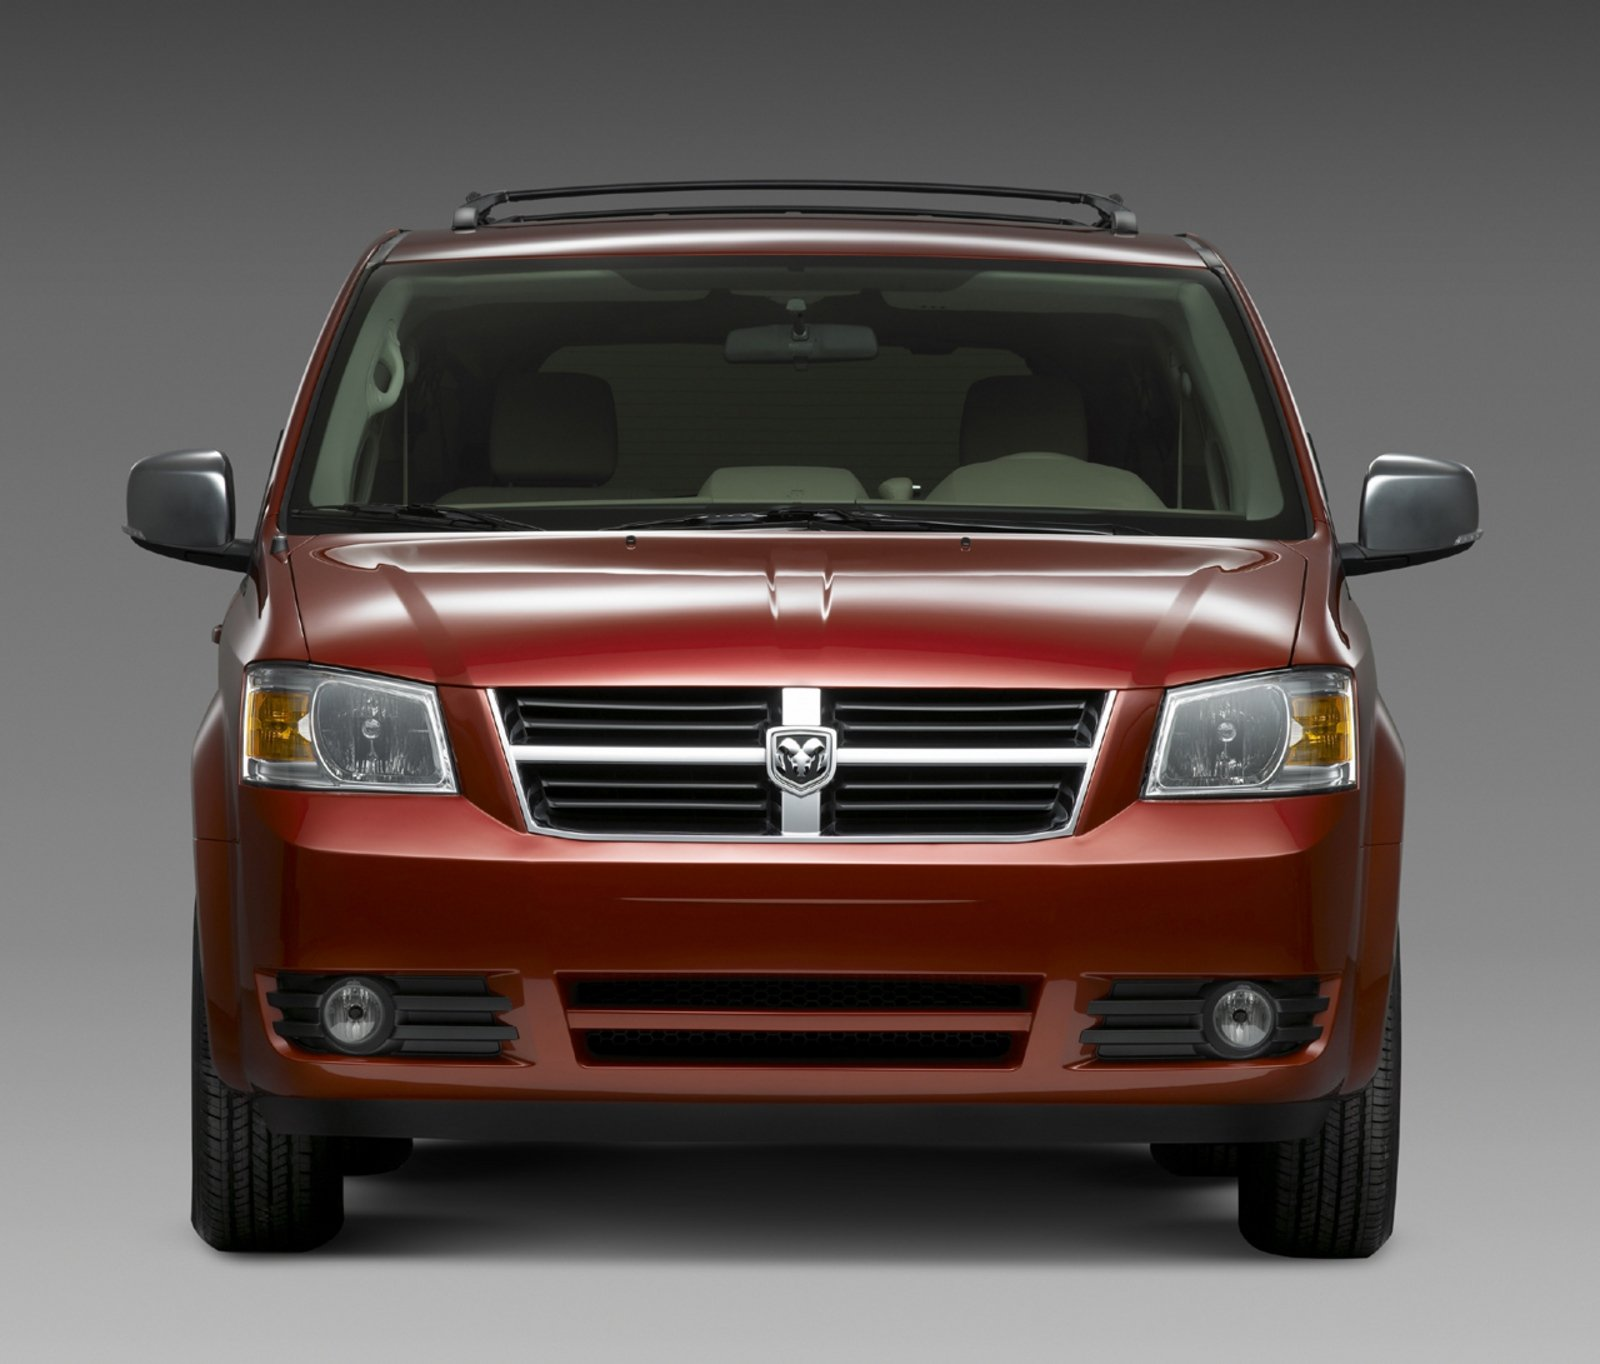 2008 Dodge Grand Caravan And Chrysler Town & Country